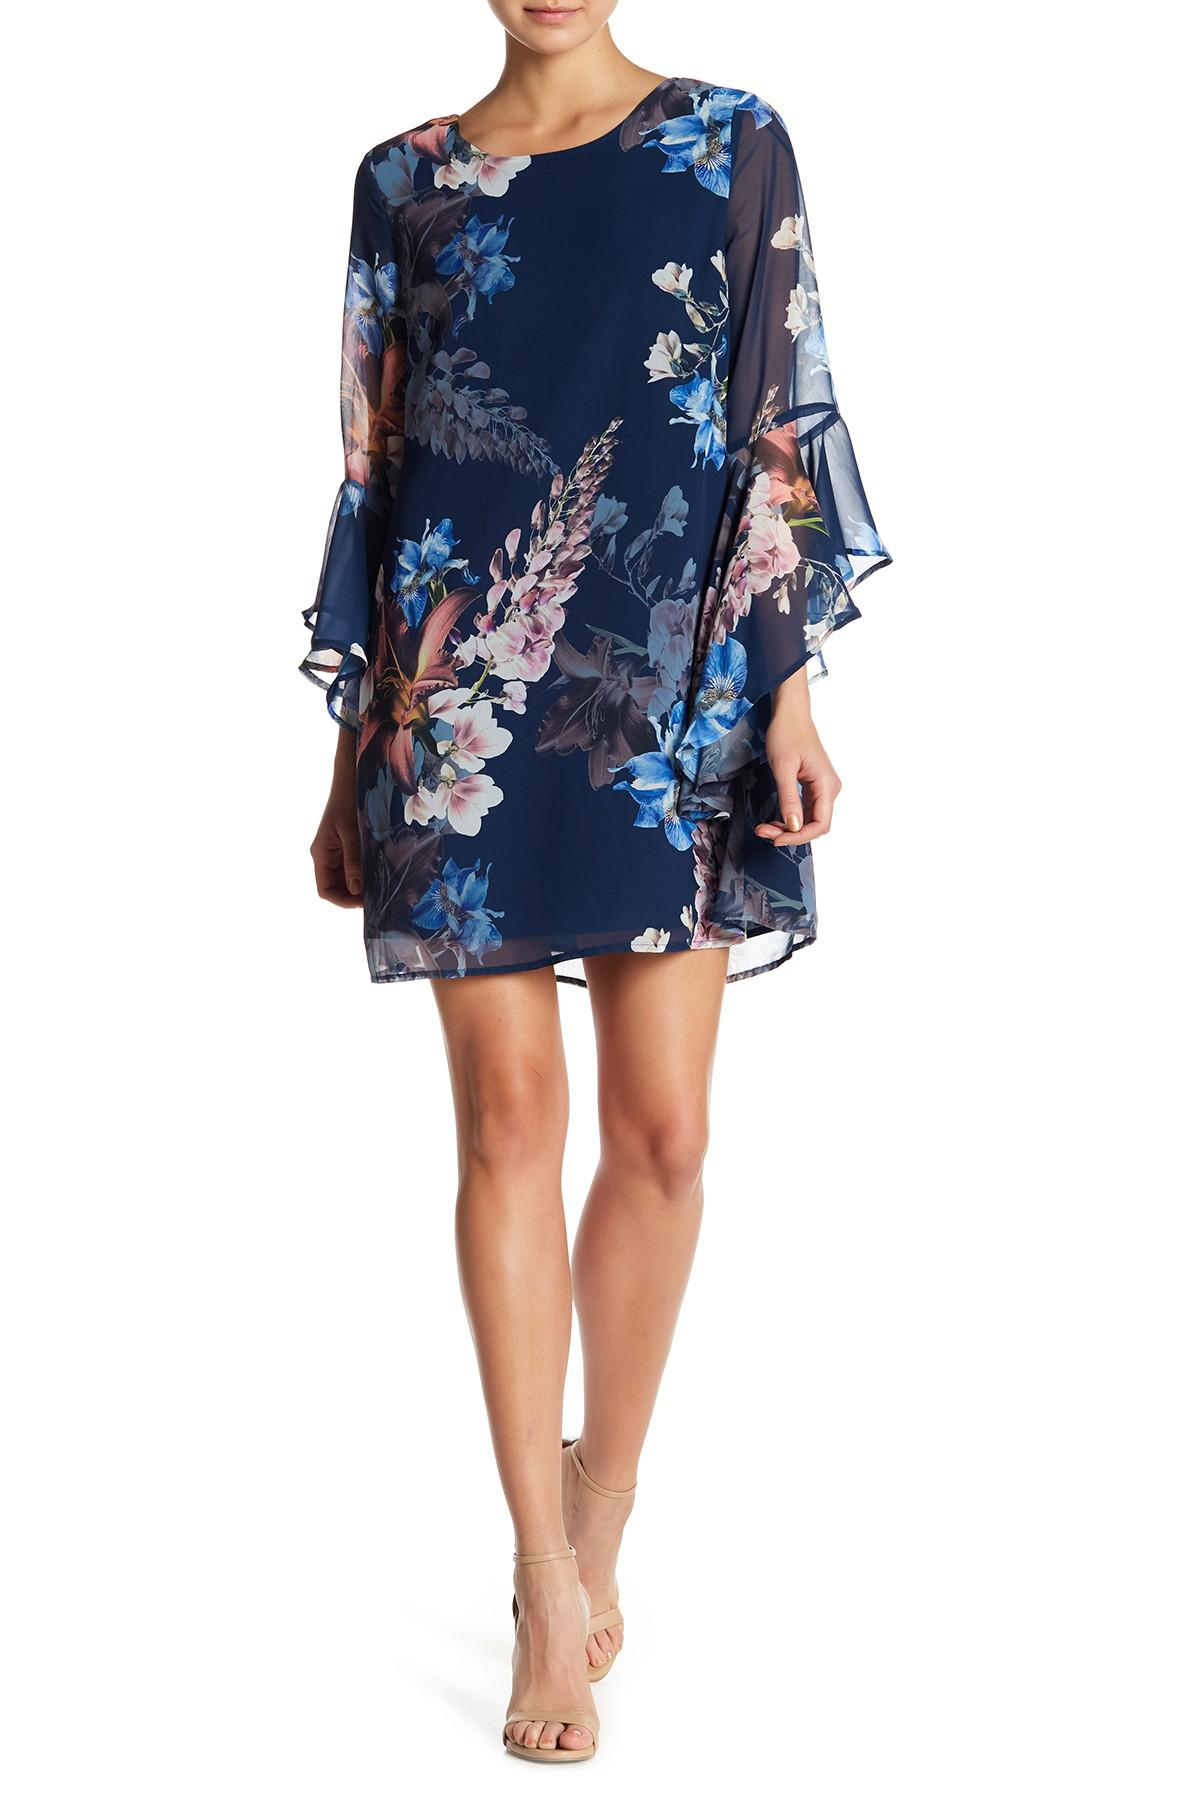 06c38bc540e Lyst - Cece by Cynthia Steffe Ashley Bell Sleeve Print Dress in Blue